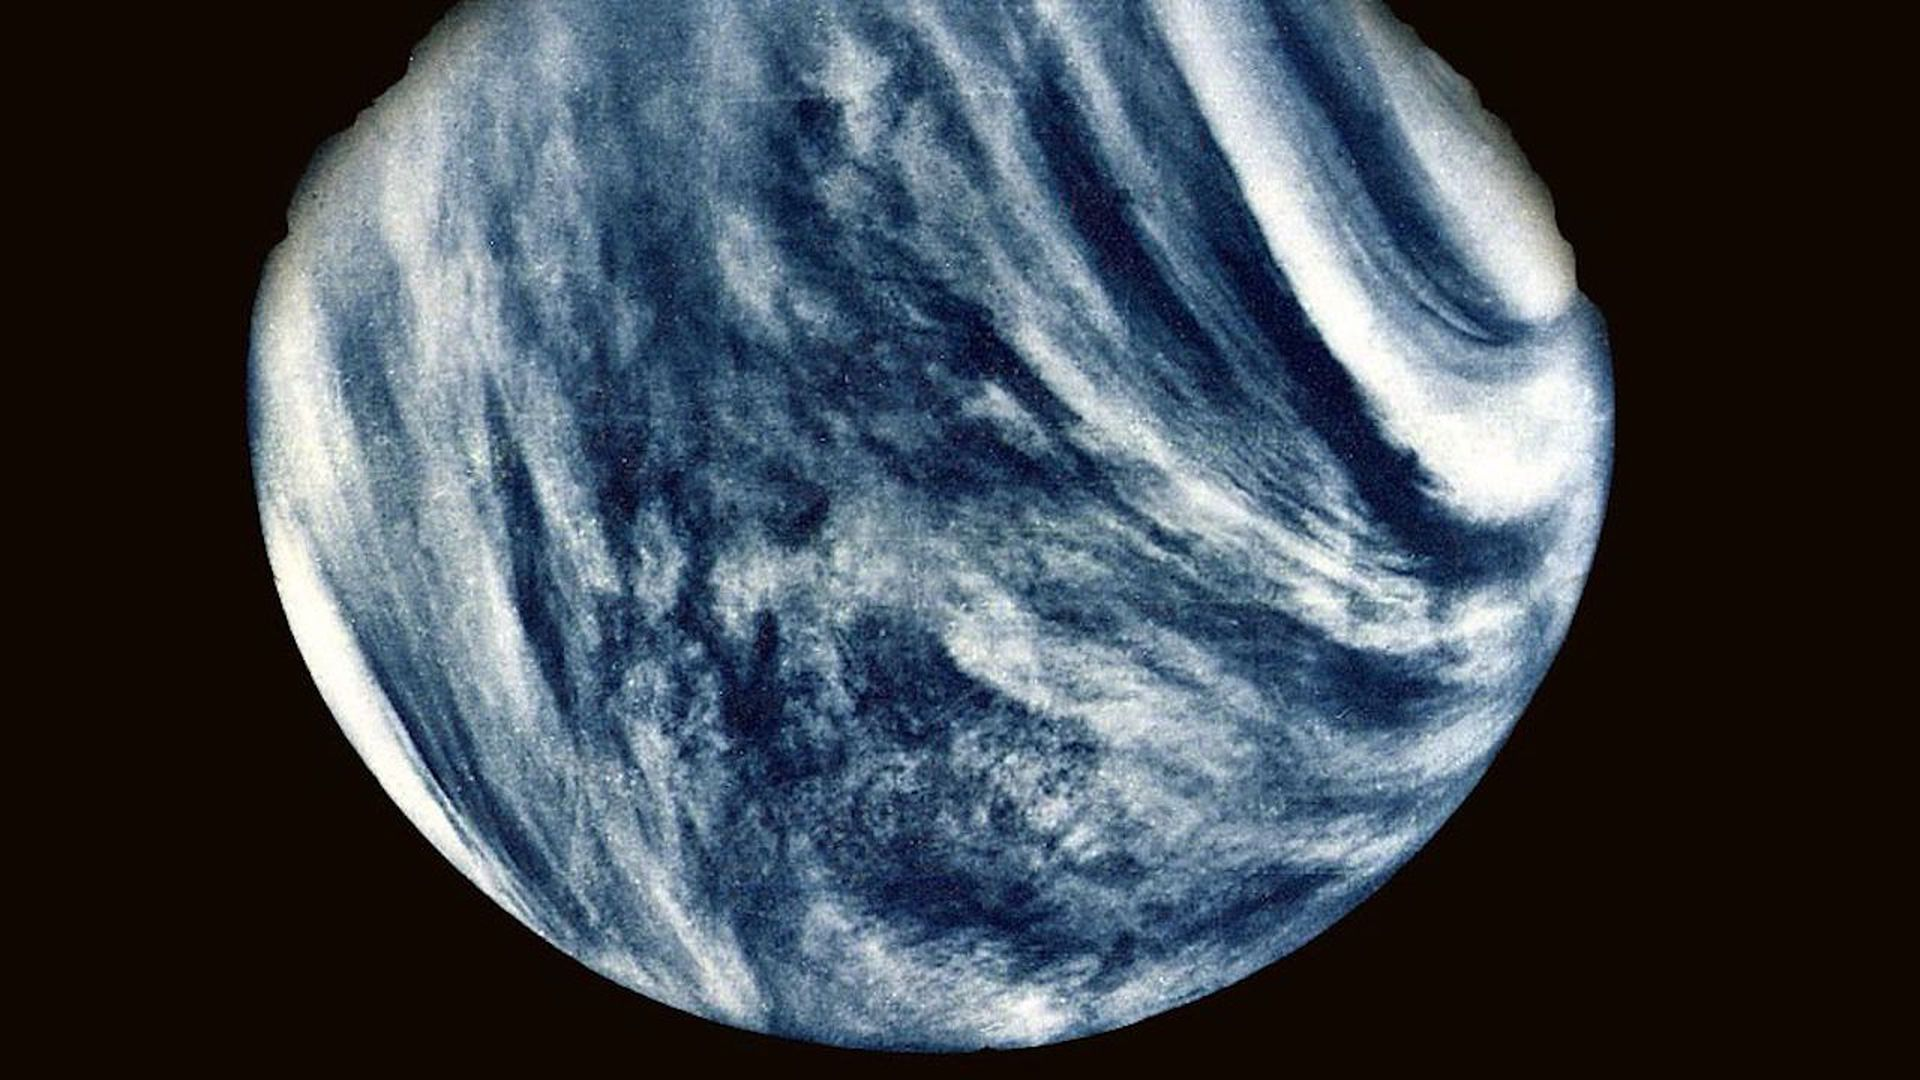 Venus could unlock the secrets of habitability in our solar system and beyond